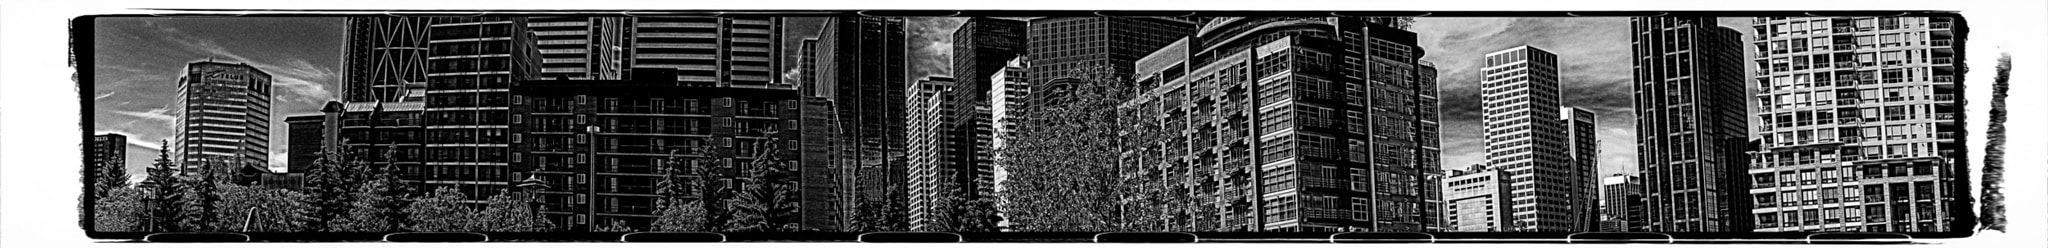 Photograph 2013P52B&W 27/52: Panoramic - City Sliver by Paul Howard on 500px